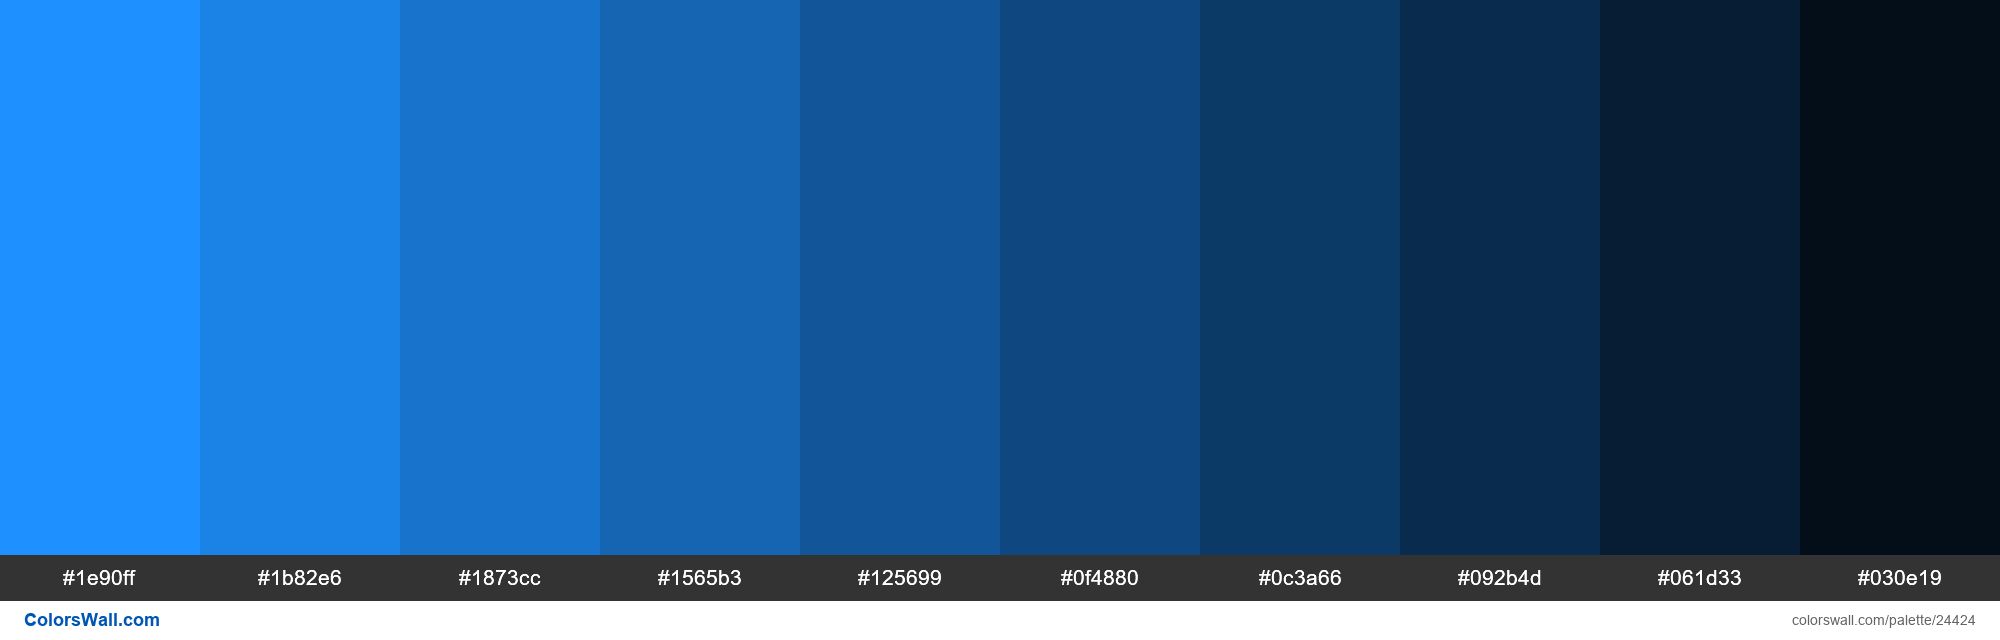 Shades of Dodger Blue #1E90FF hex color - #24424